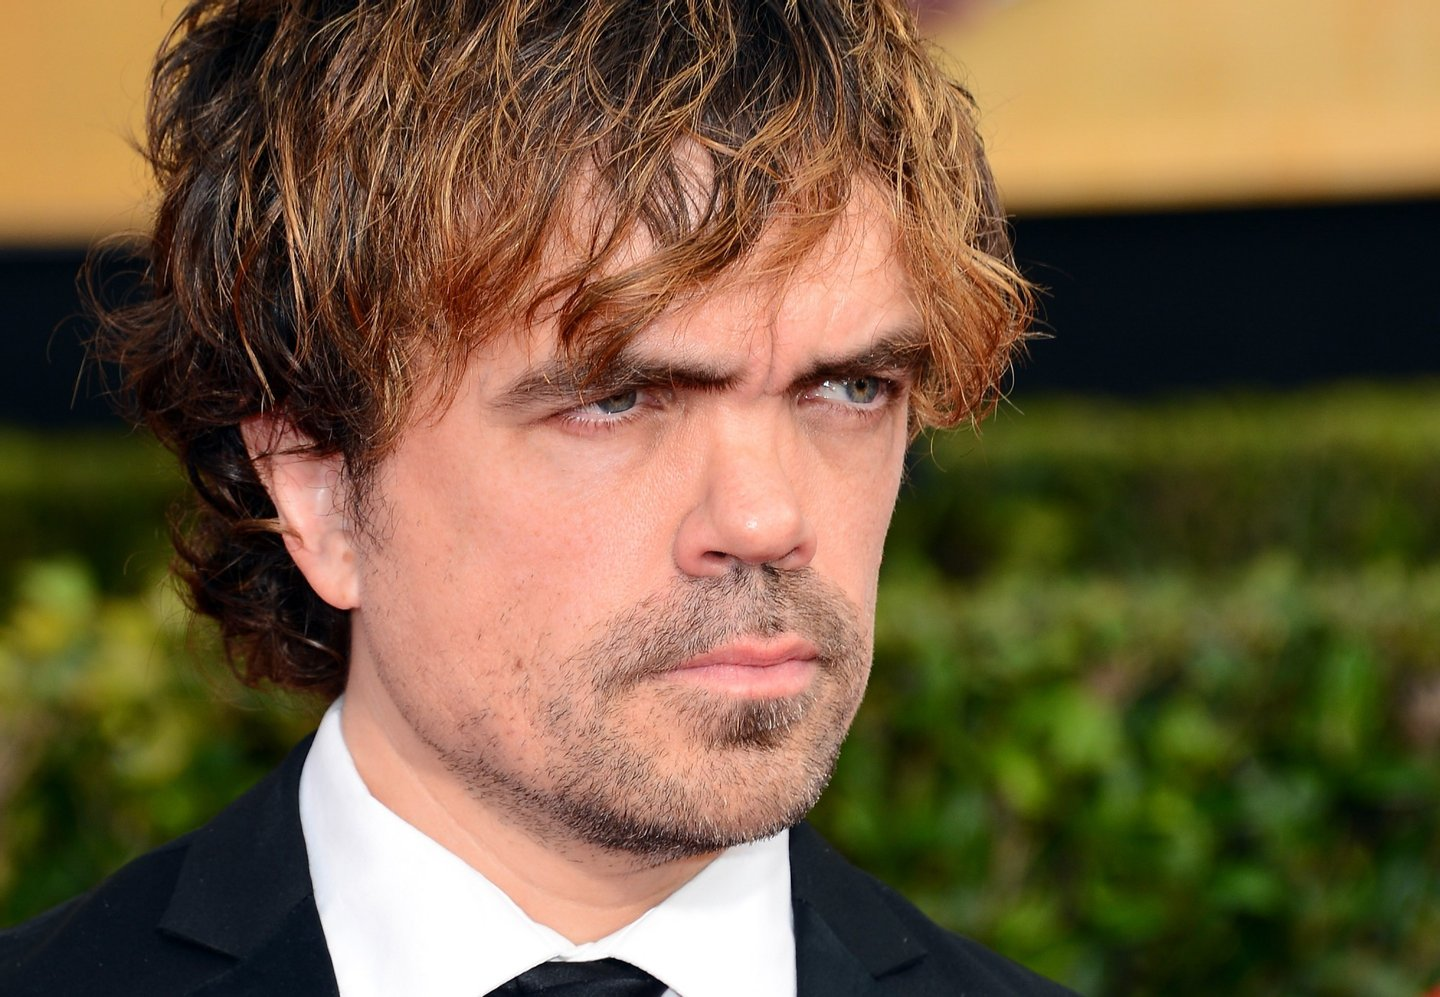 LOS ANGELES, CA - JANUARY 18: Actor Peter Dinklage attends the 20th Annual Screen Actors Guild Awards at The Shrine Auditorium on January 18, 2014 in Los Angeles, California. (Photo by Ethan Miller/Getty Images)